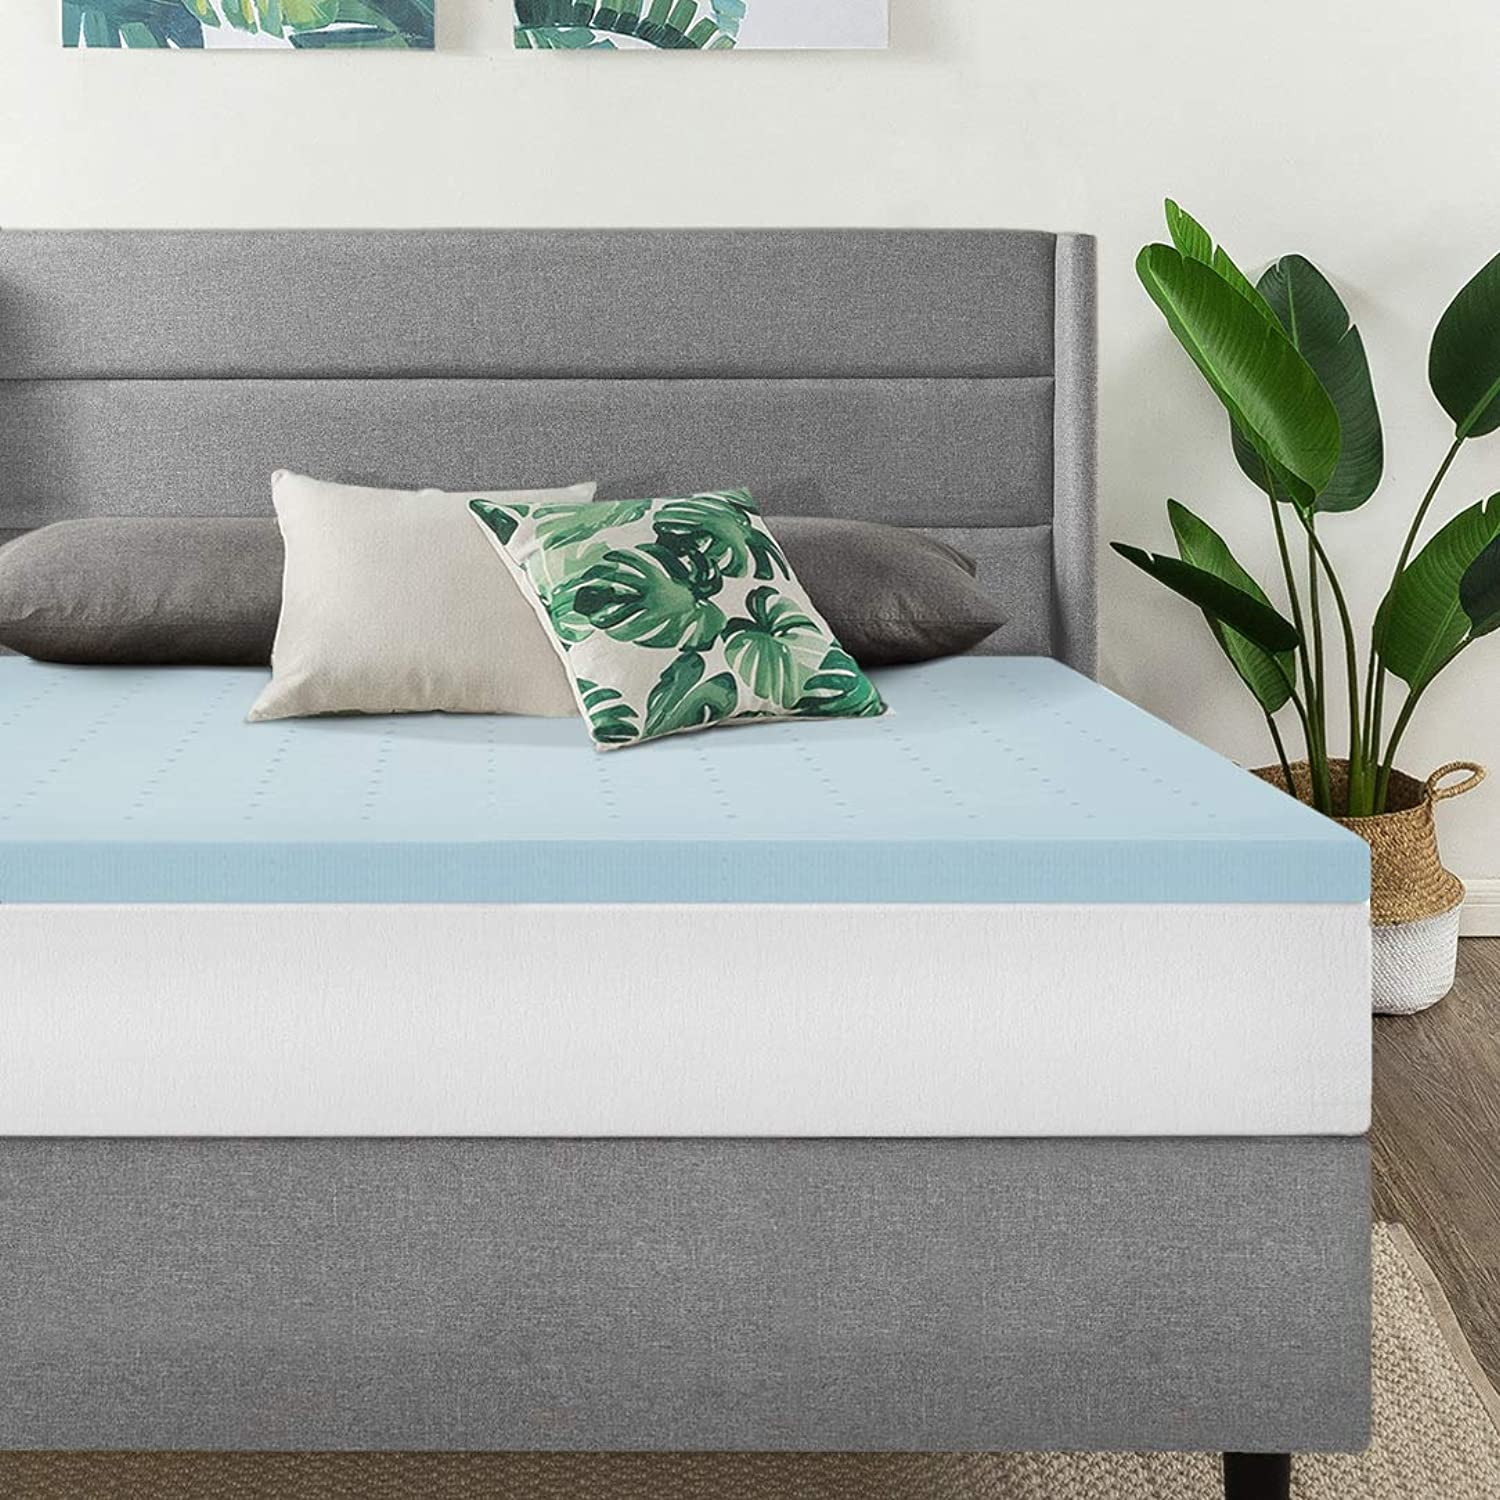 Best Price Mattress Twin XL 1.5 Inch Gel Memory Foam Bed Topper with Cooling Mattress Pad Extra Long Size, bluee